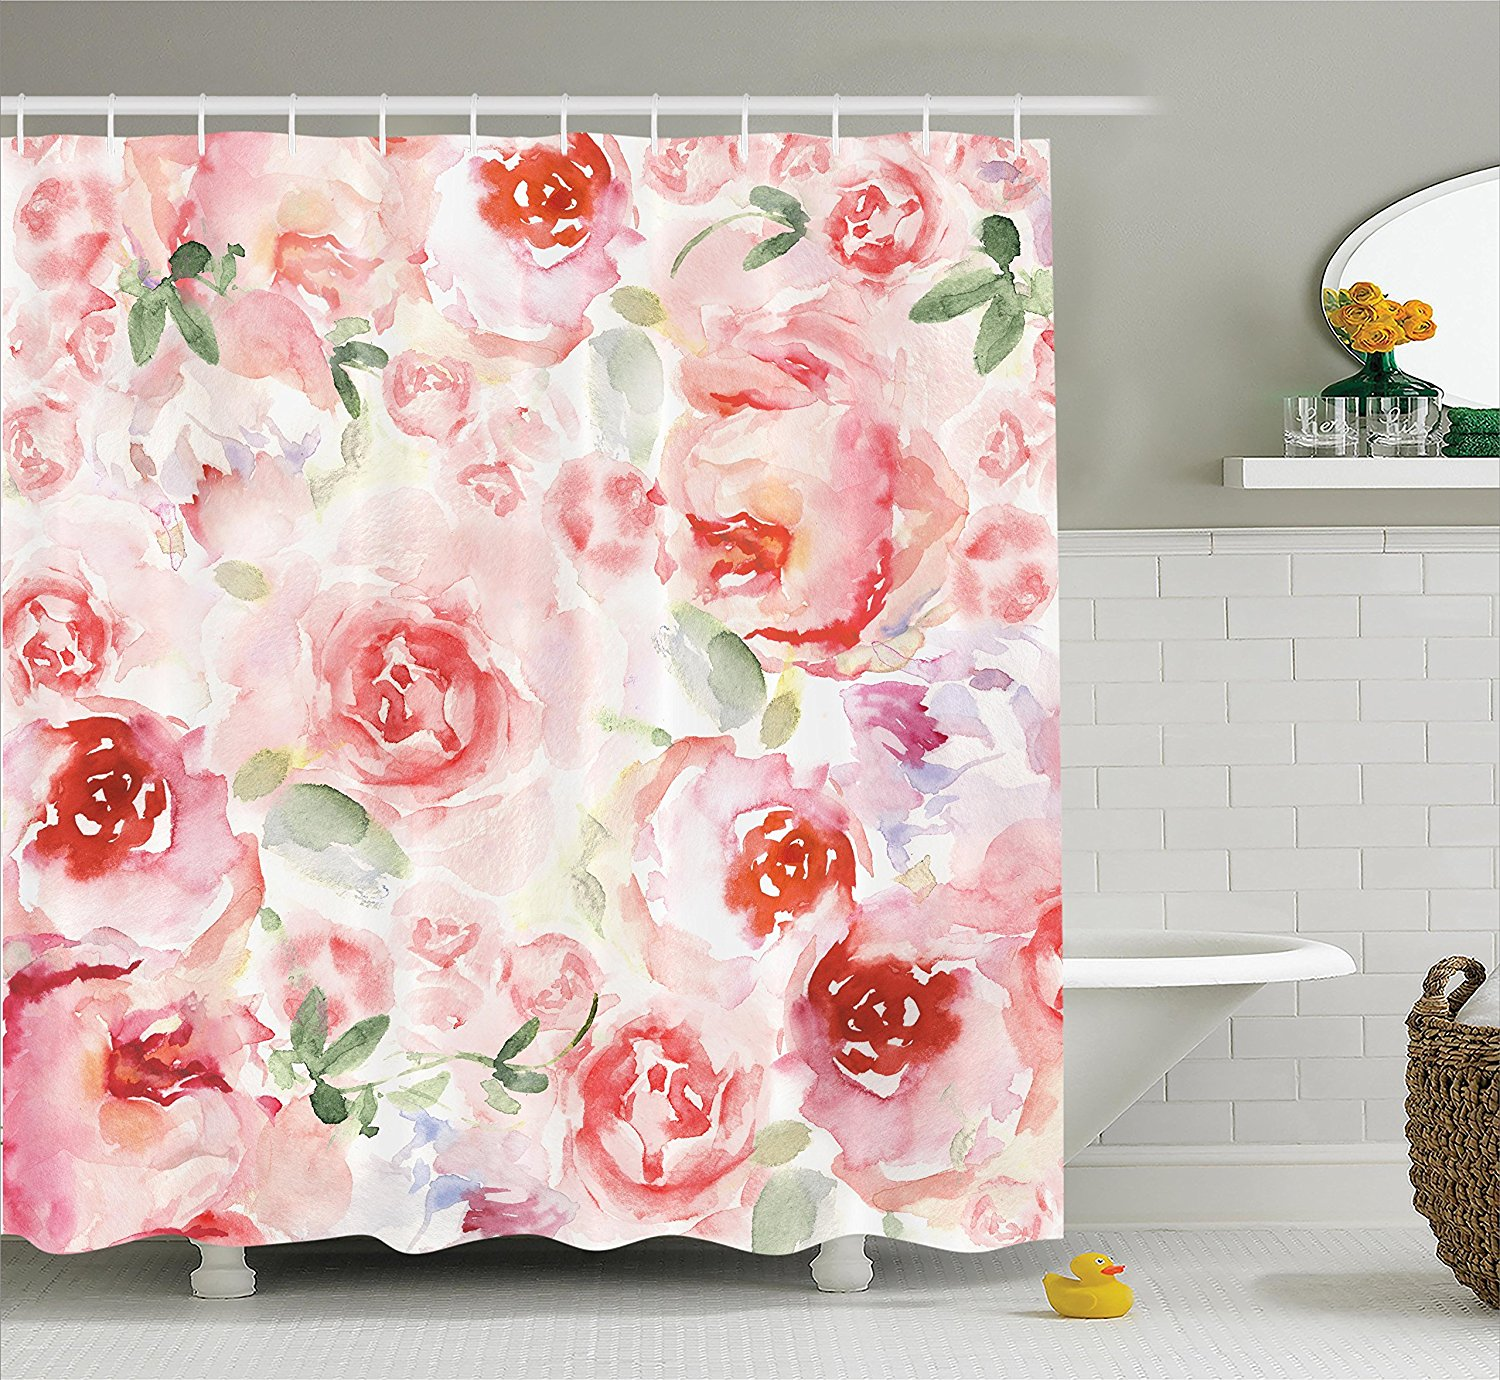 Romantic shower curtain - Soft Colored Pale Faded Mix Of Roses Vintage Style Romantic Dream Painting Polyester Fabric Bathroom